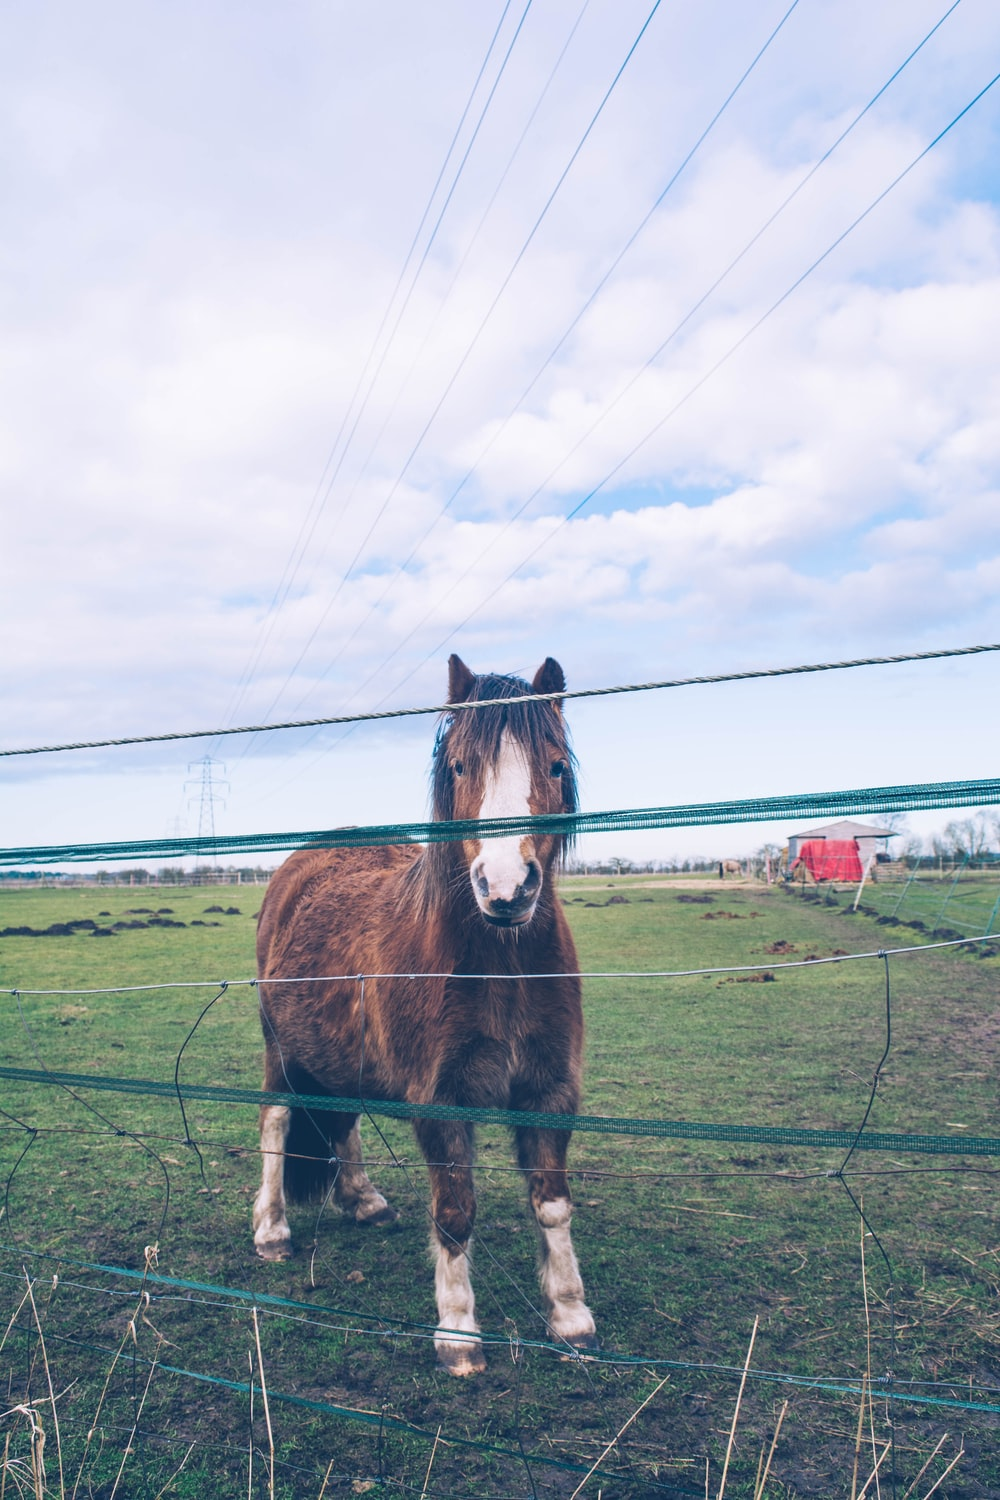 brown and white horse standing beside fence during daytime